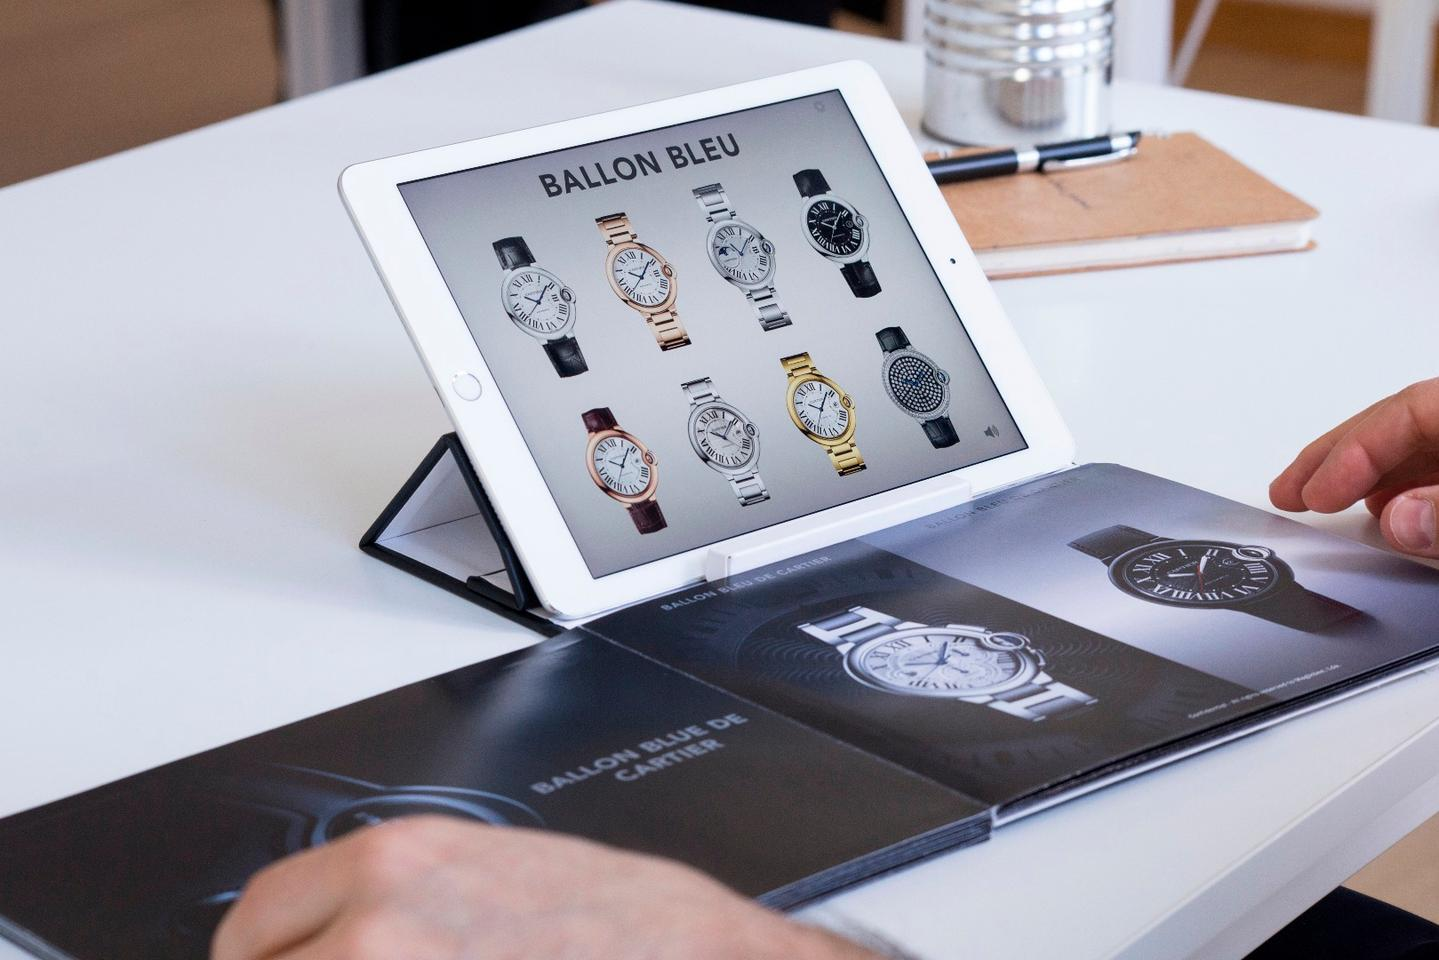 Turning to a page on wristwatches in the physical Magik Book brochure could bring up all available options for a brand on the tablet screen